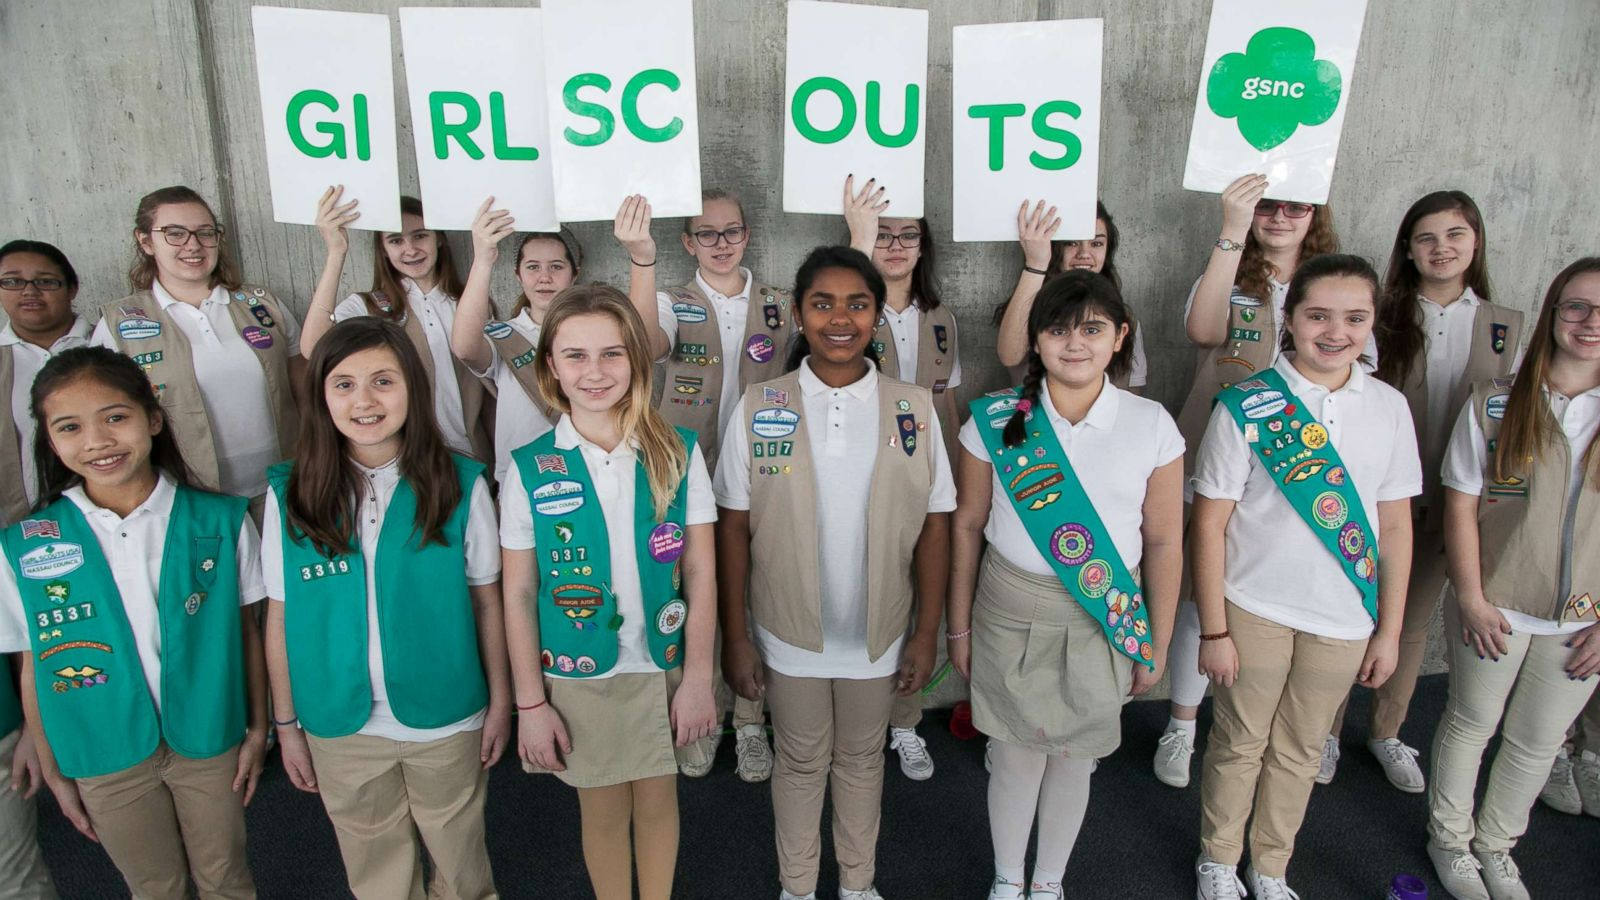 Girl Scouts of the United States of America